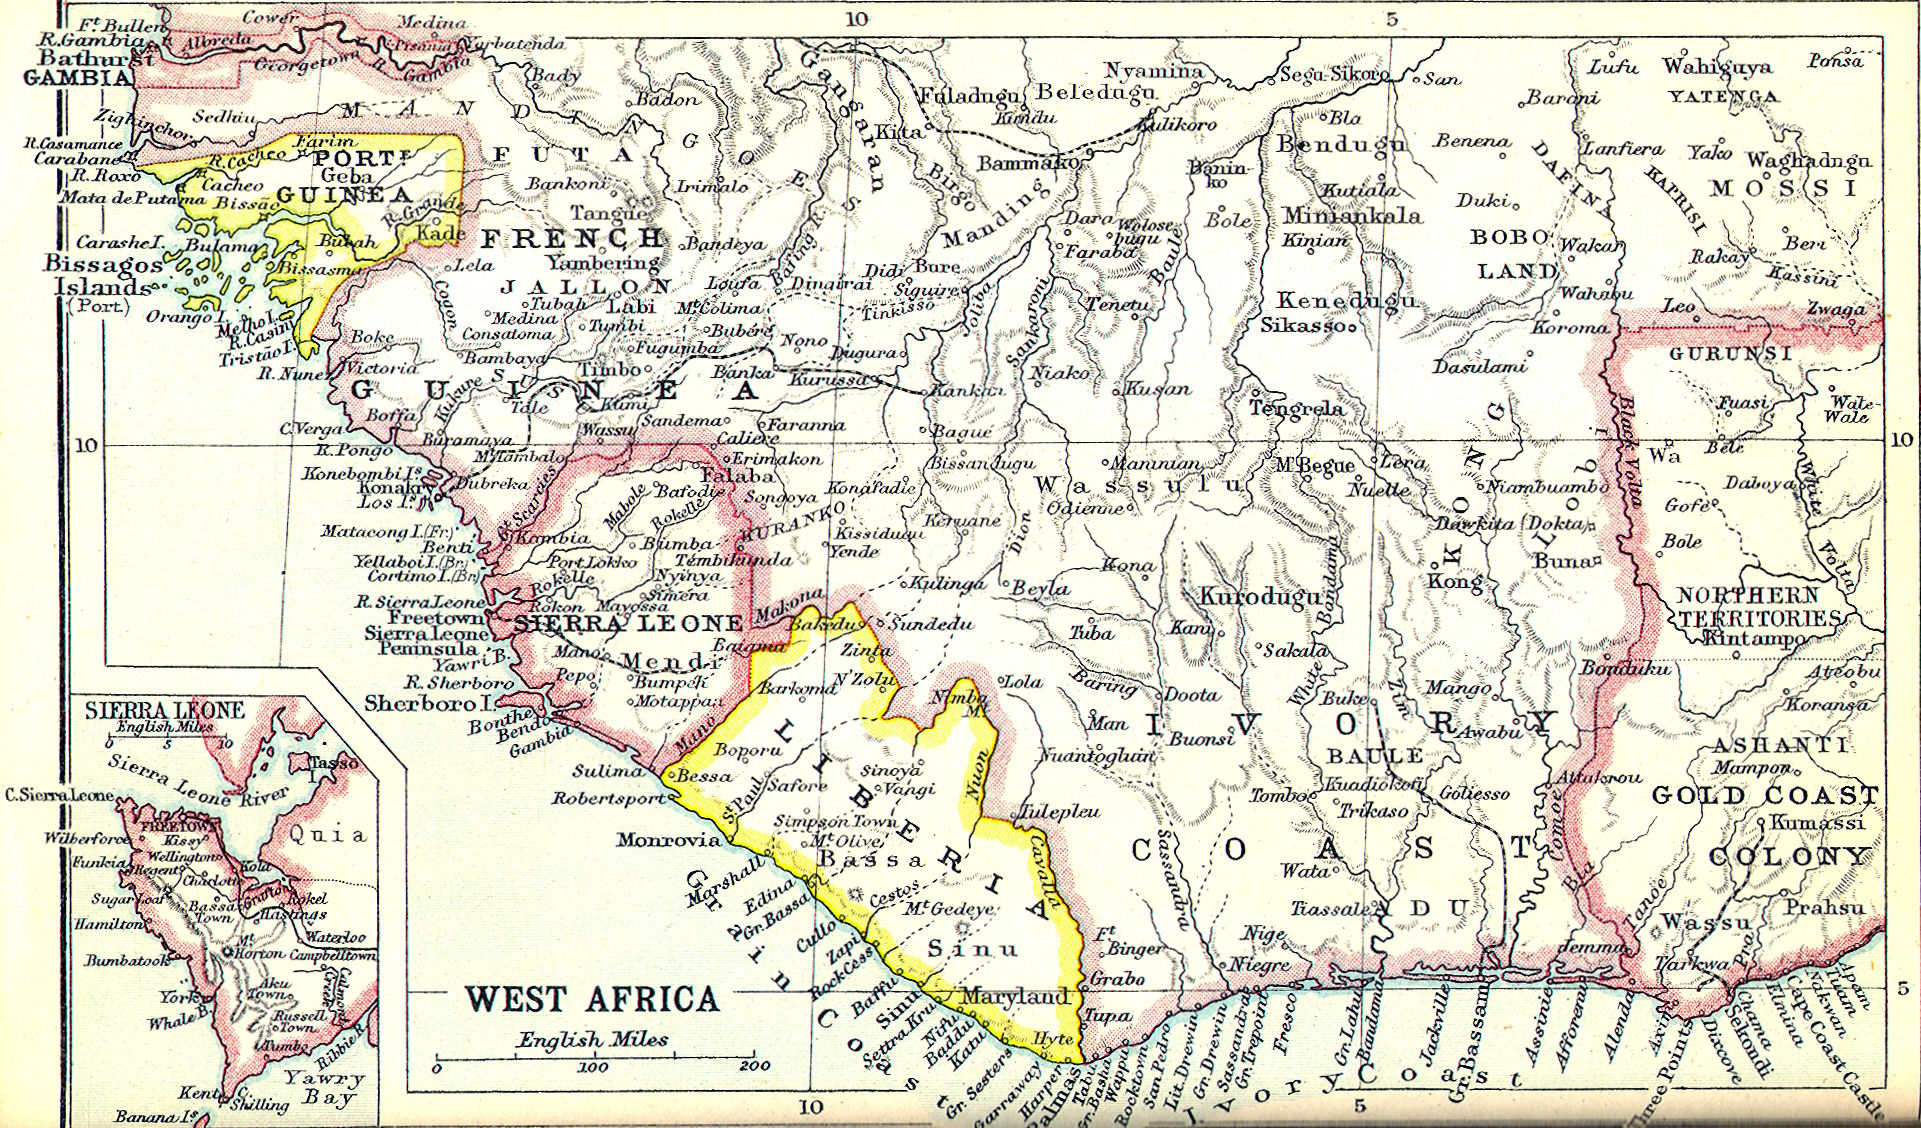 WHKMLA TB WH Literature on the History of West Africa